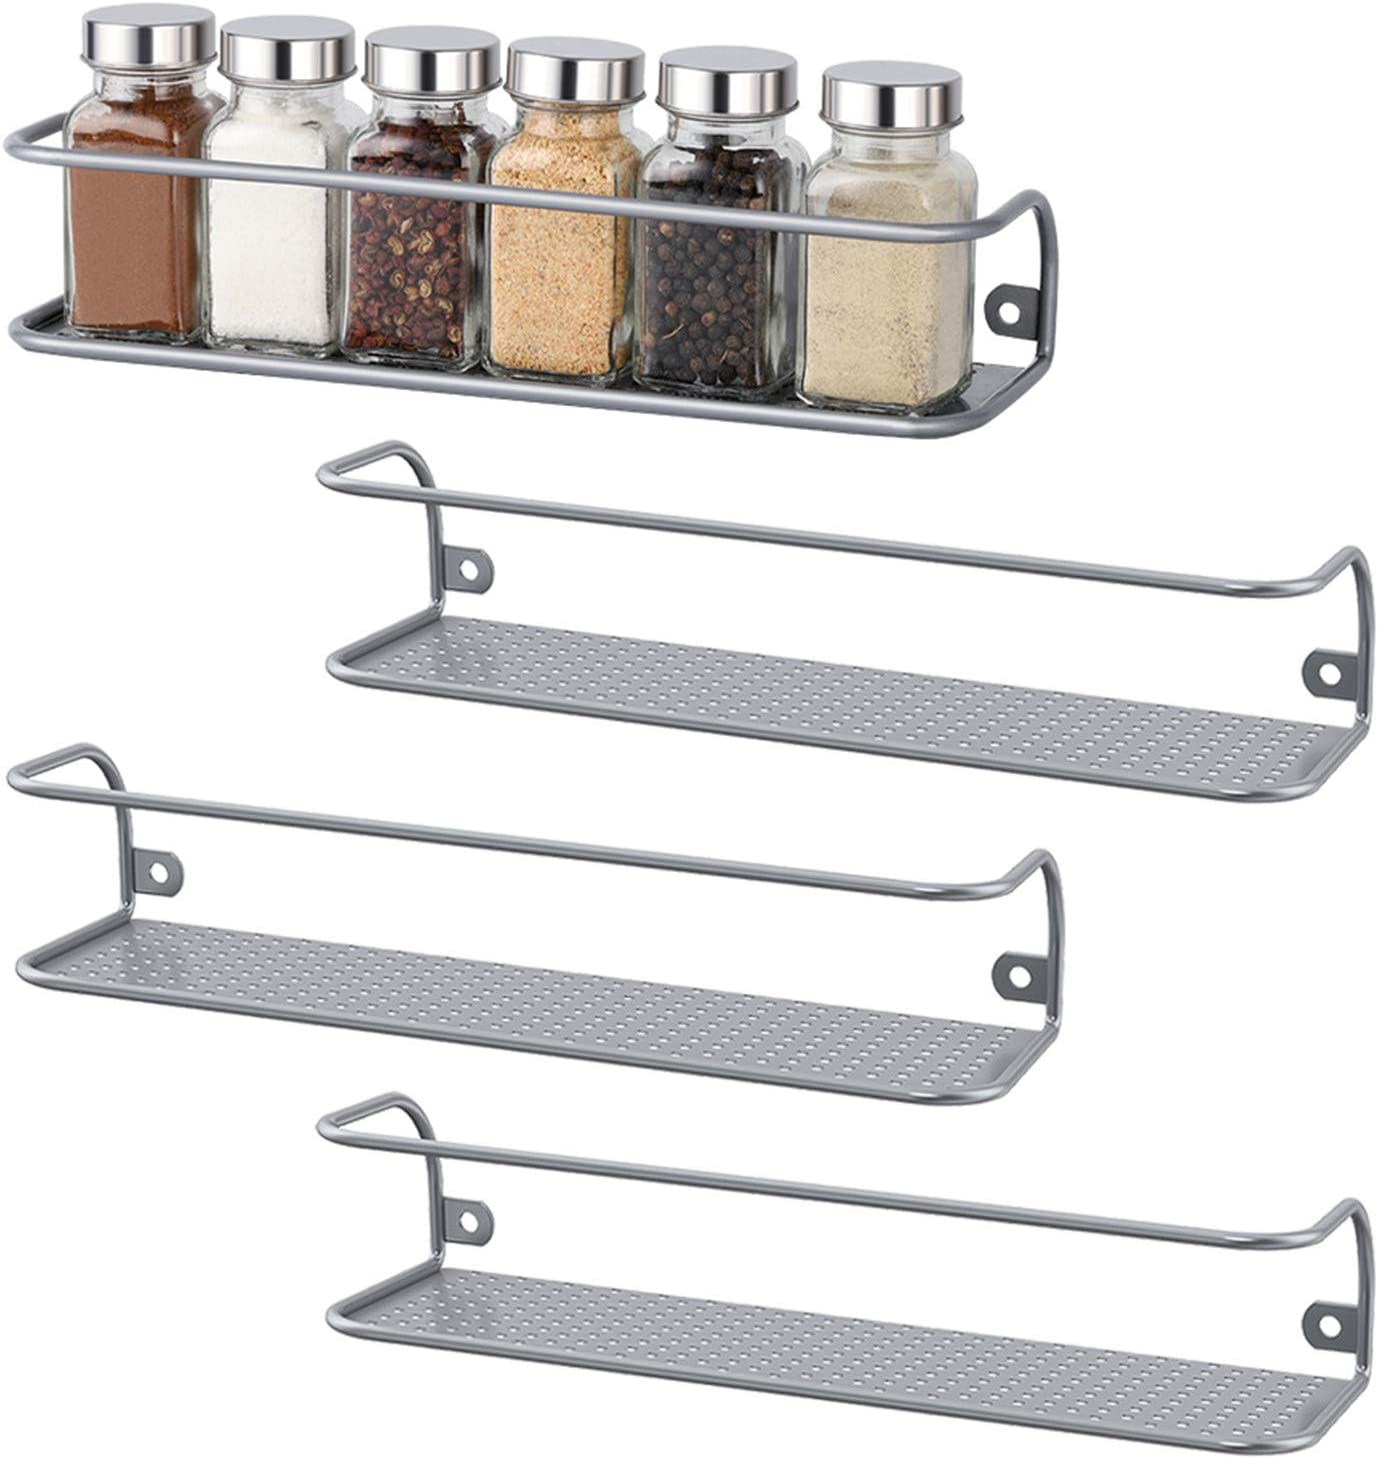 Spice Rack Organizer for Cabinet- Spice Rack Wall Mount Cupboard /& Pantry Set of 4 Hanging Spice Rack in Chrome Spice Shelf for your Kitchen Cabinet Cabinet Door Organizer